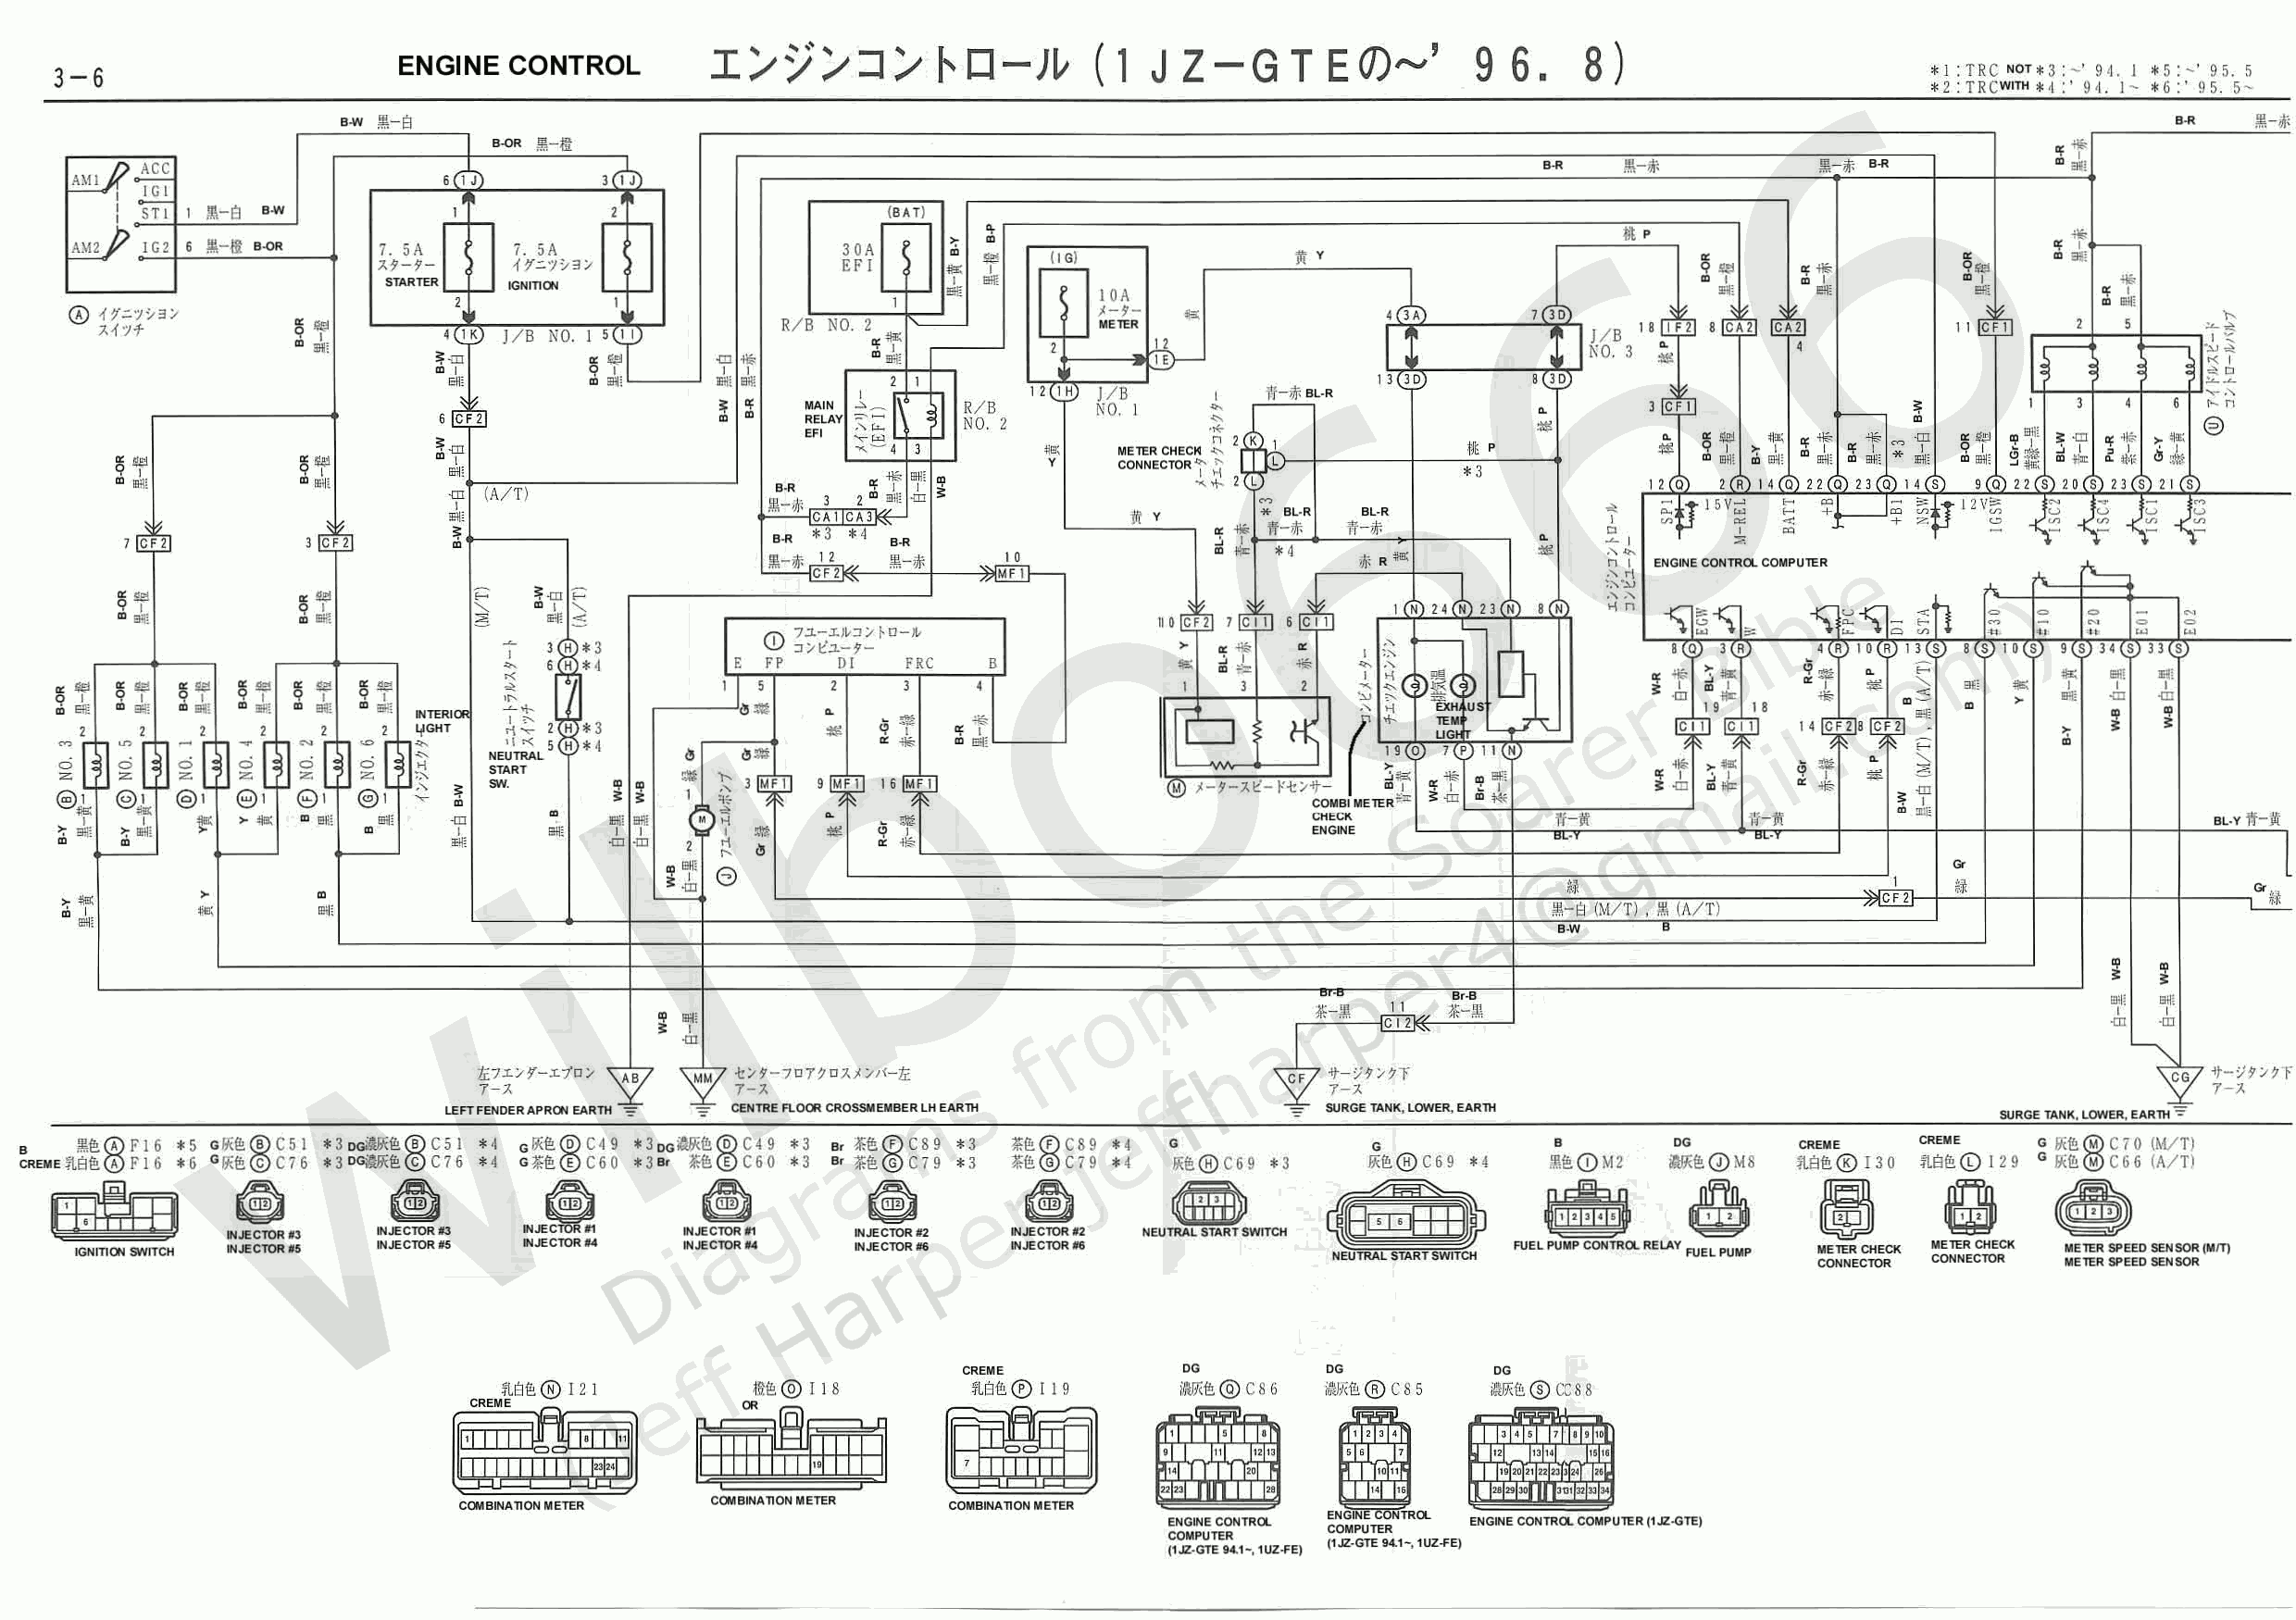 1jz gte engine diagram 1jz automotive wiring diagrams xzz3x%20electrical%20wiring%20diagram%206737105%203 6